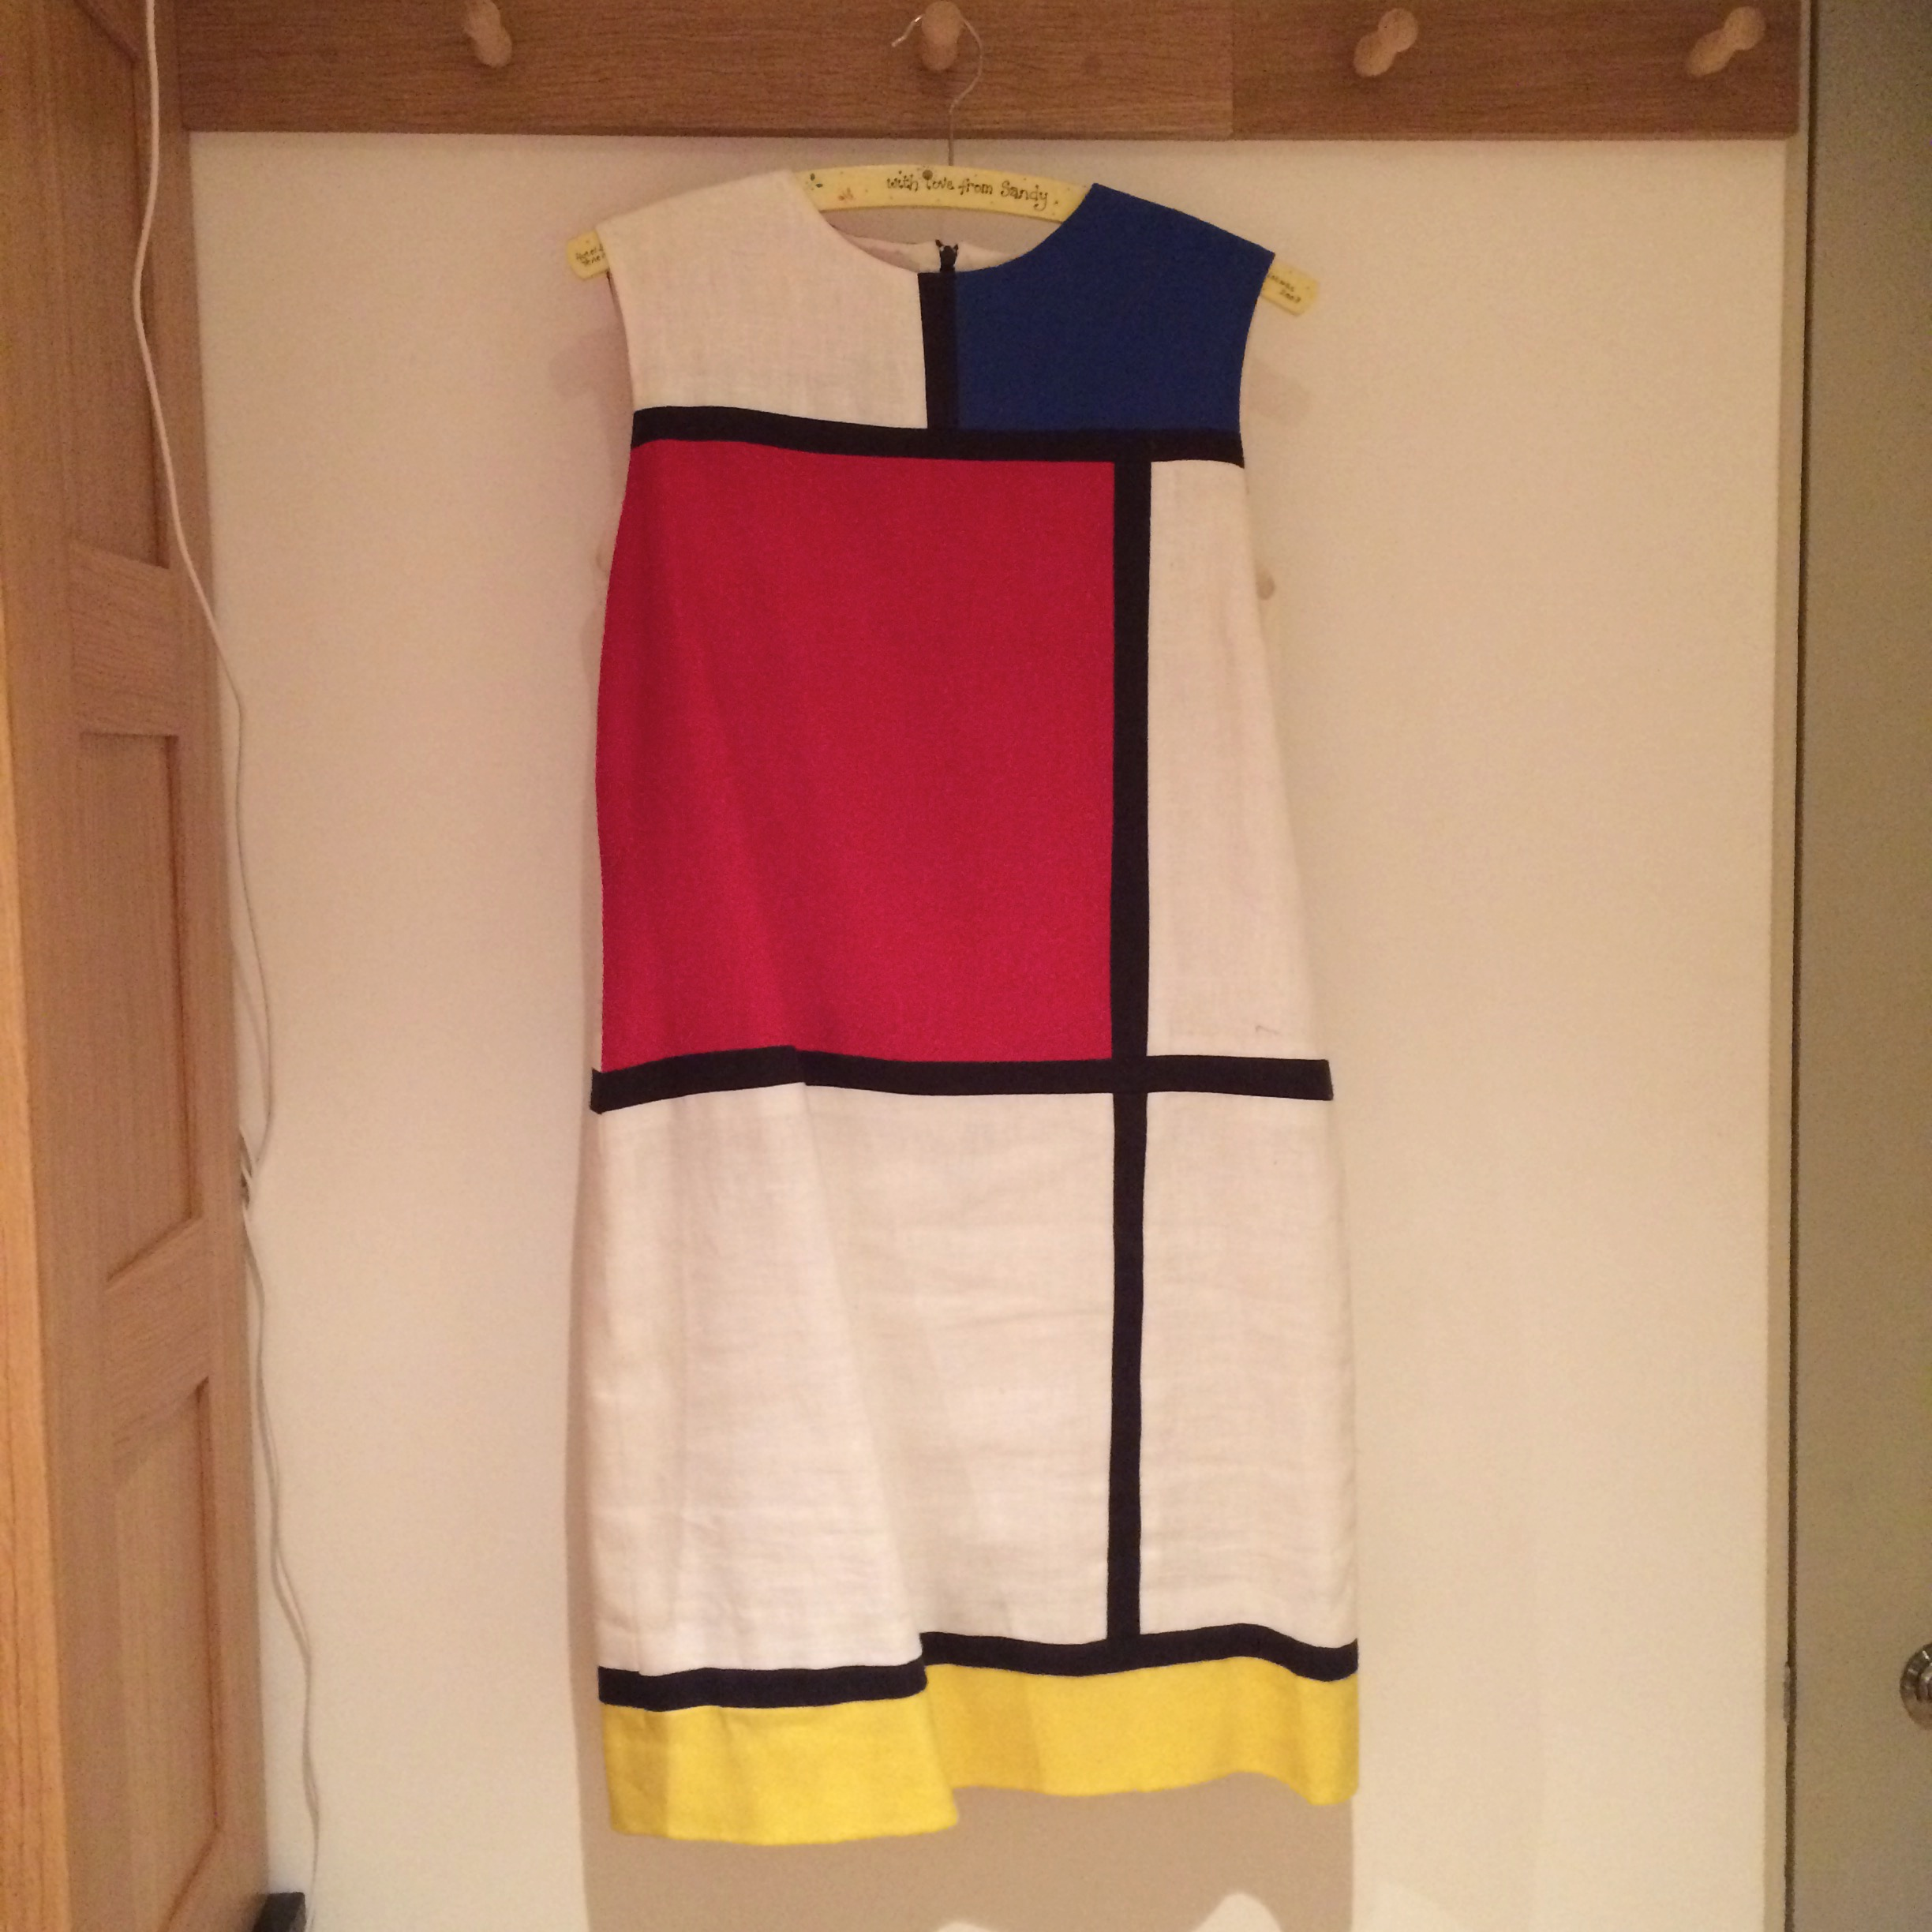 My Mondrian dress (V1556 modified)